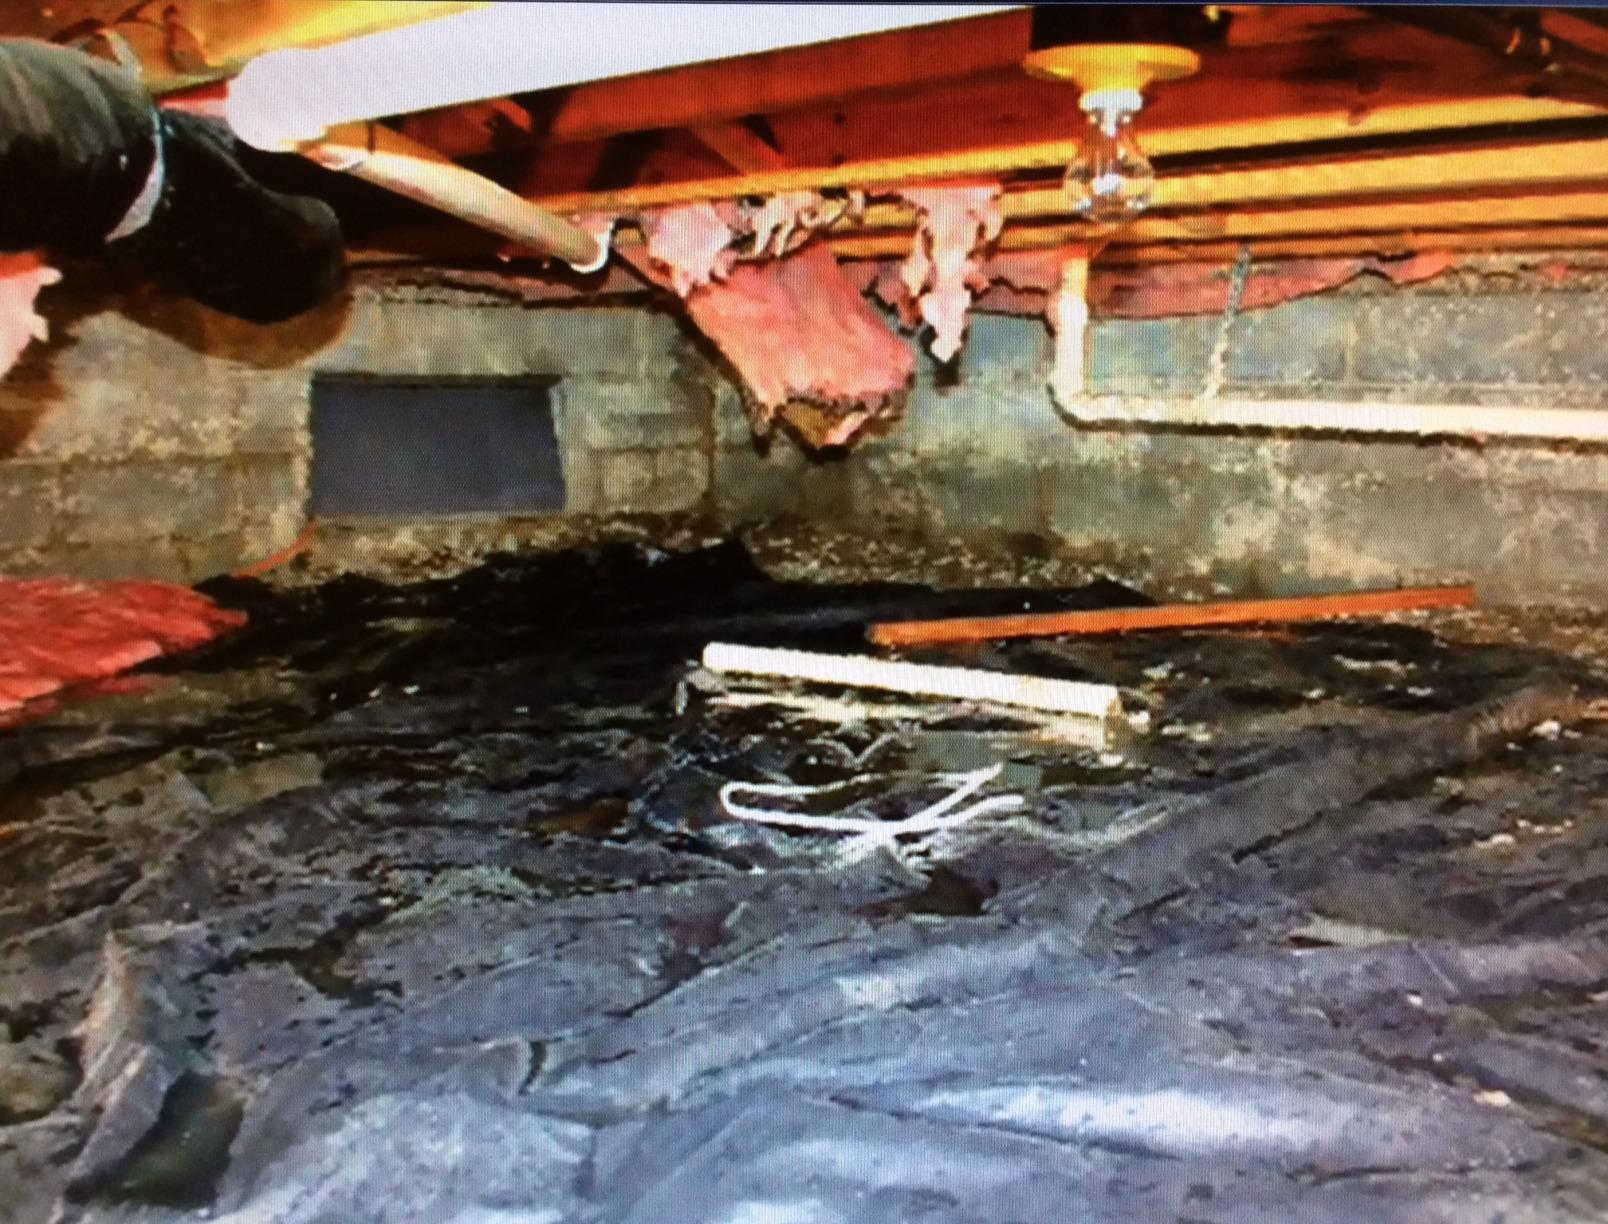 Crawlspace Encapsulation in High Shoals, NC Before & After - Before Photo